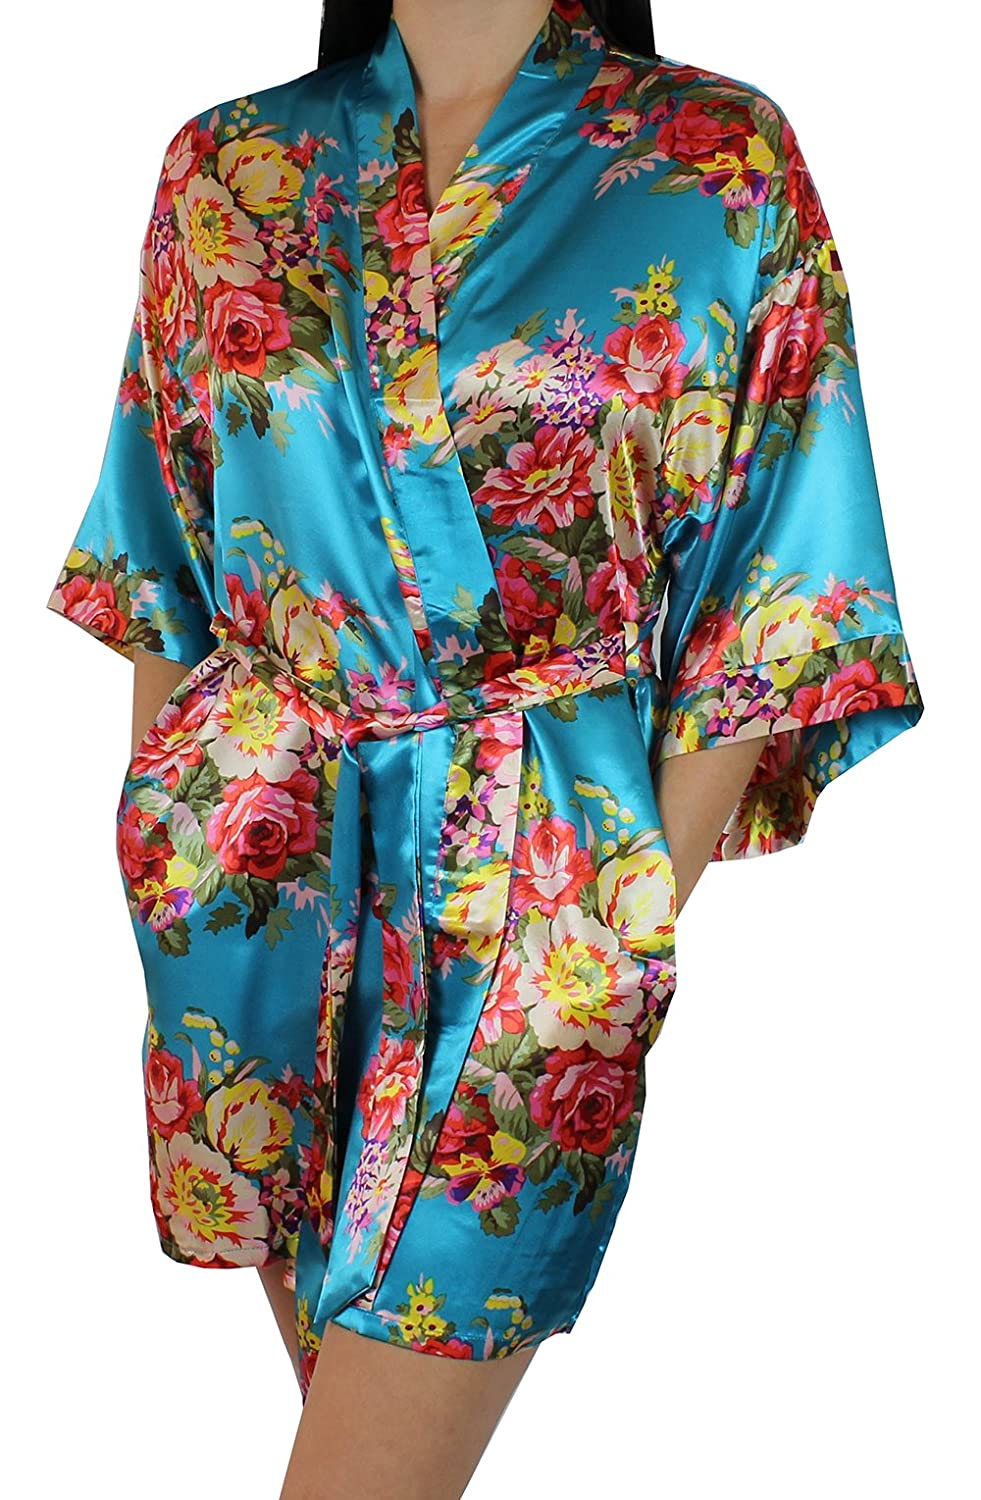 Ms Lovely Women's Floral Satin Kimono Short Bridesmaid Robe with Pockets - Silky Touch polyfloralrobe-parent